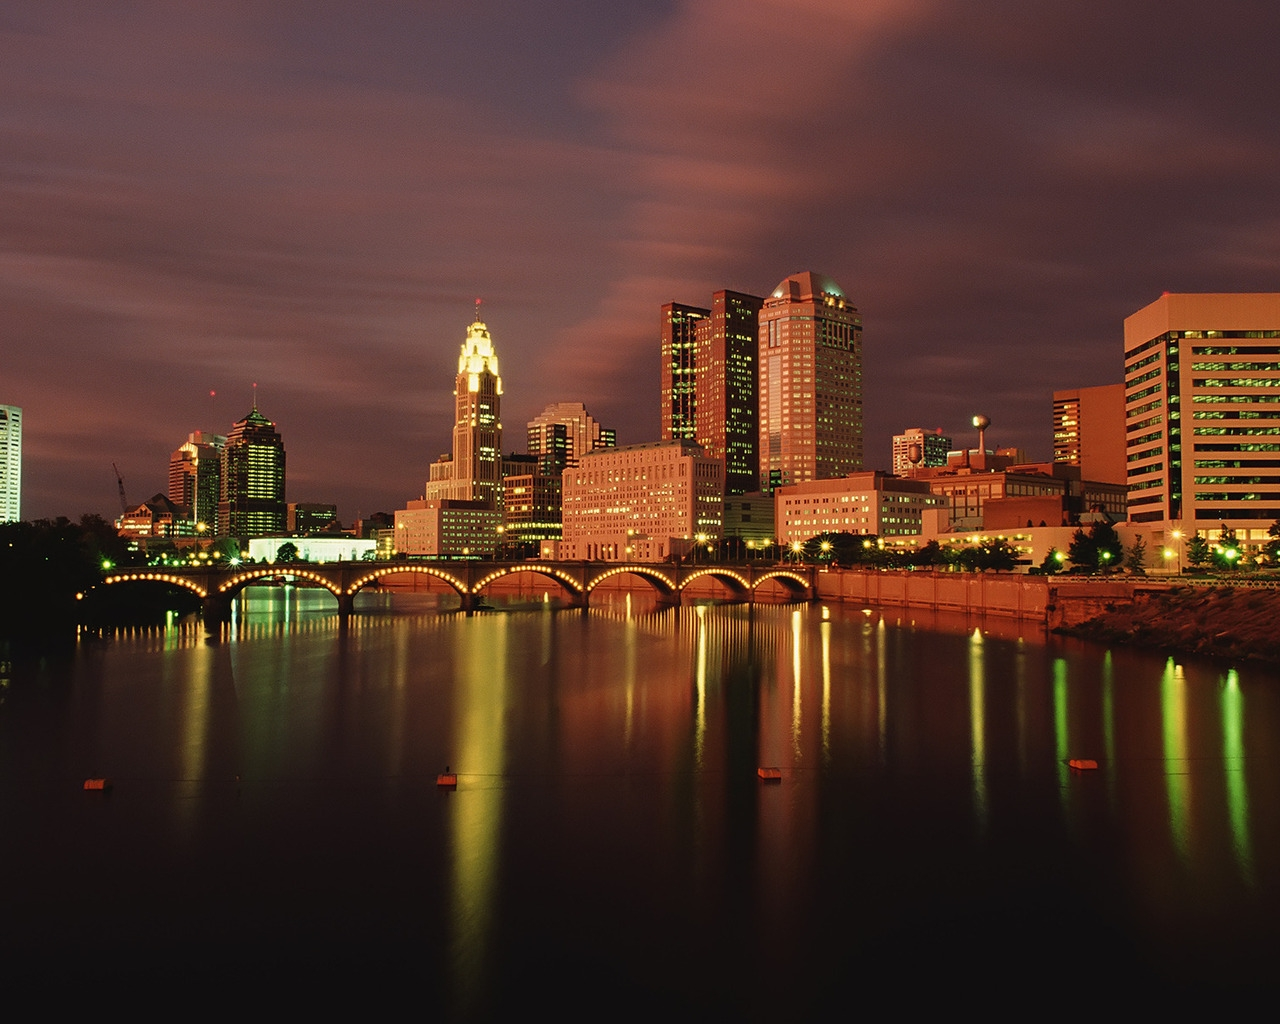 Columbus Ohio at Dusk for 1280 x 1024 resolution